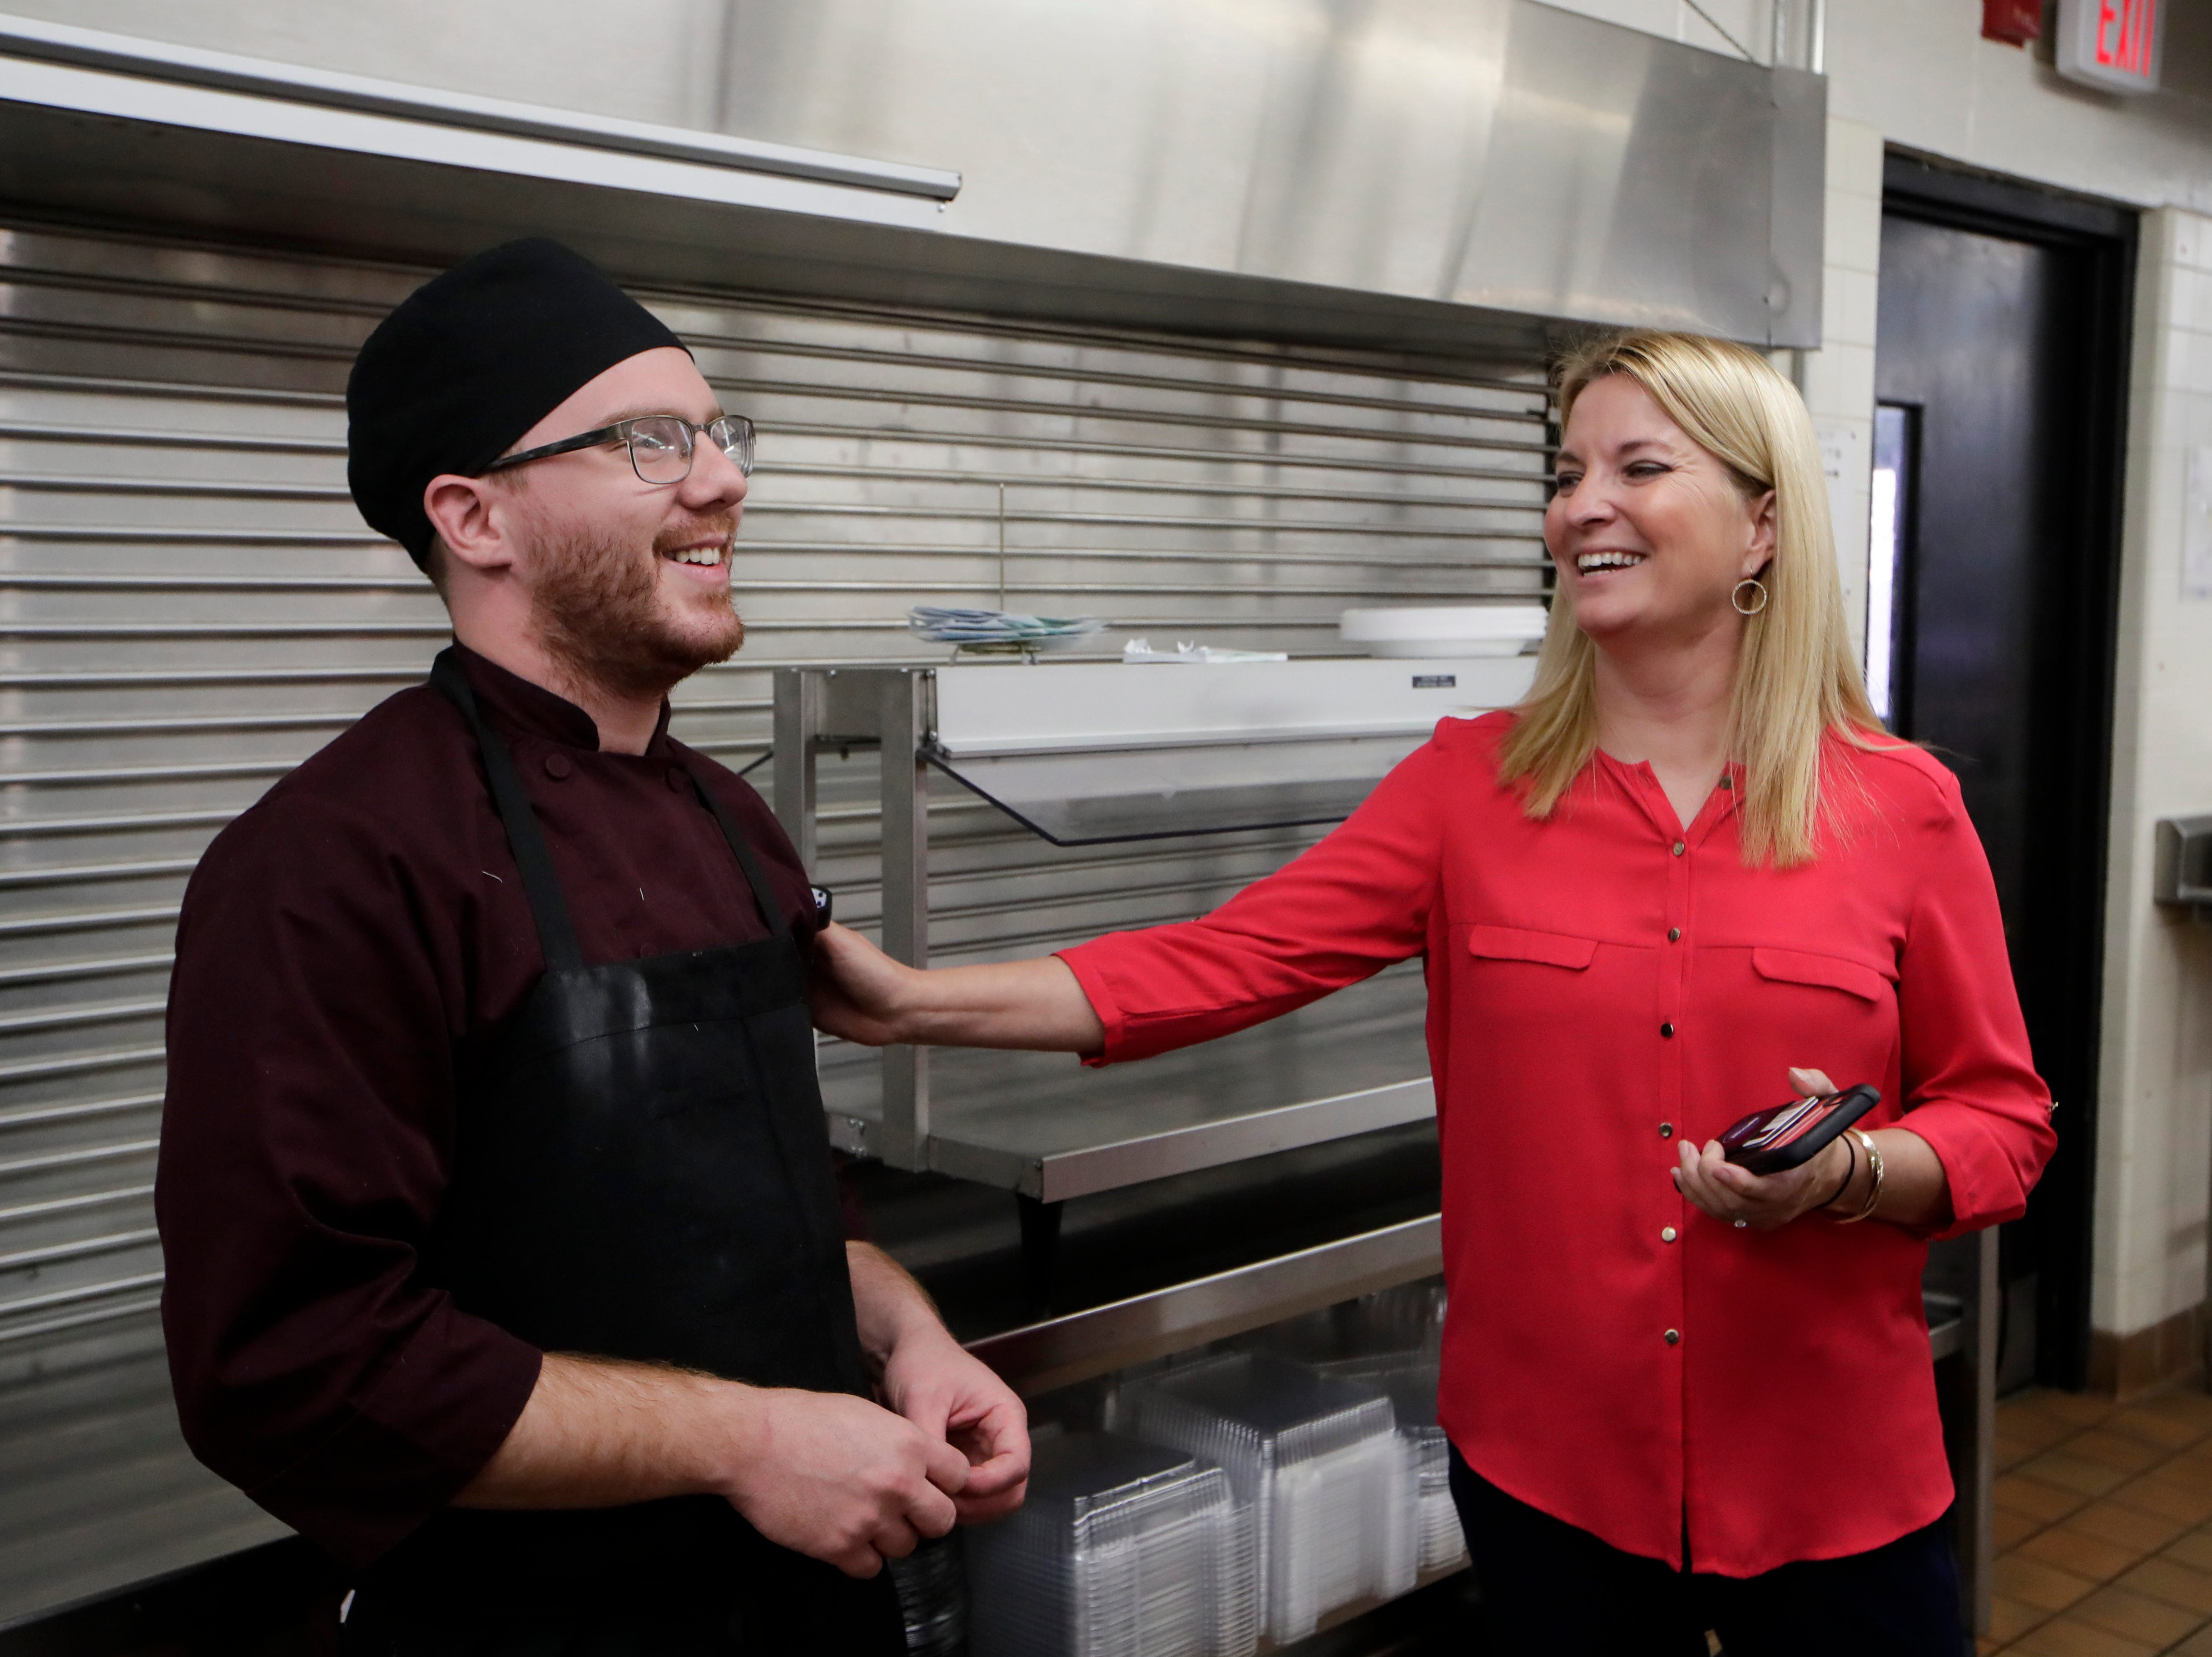 Lively Technical Director of Career, Technical and Adult Education Shelly Bell talks with culinary arts student Alex Malaspina in the kitchen Wednesday, Jan. 9, 2019 at Lively Technical Center which has been approved by the Leon County School Board to change it's name to Lively Technical College.